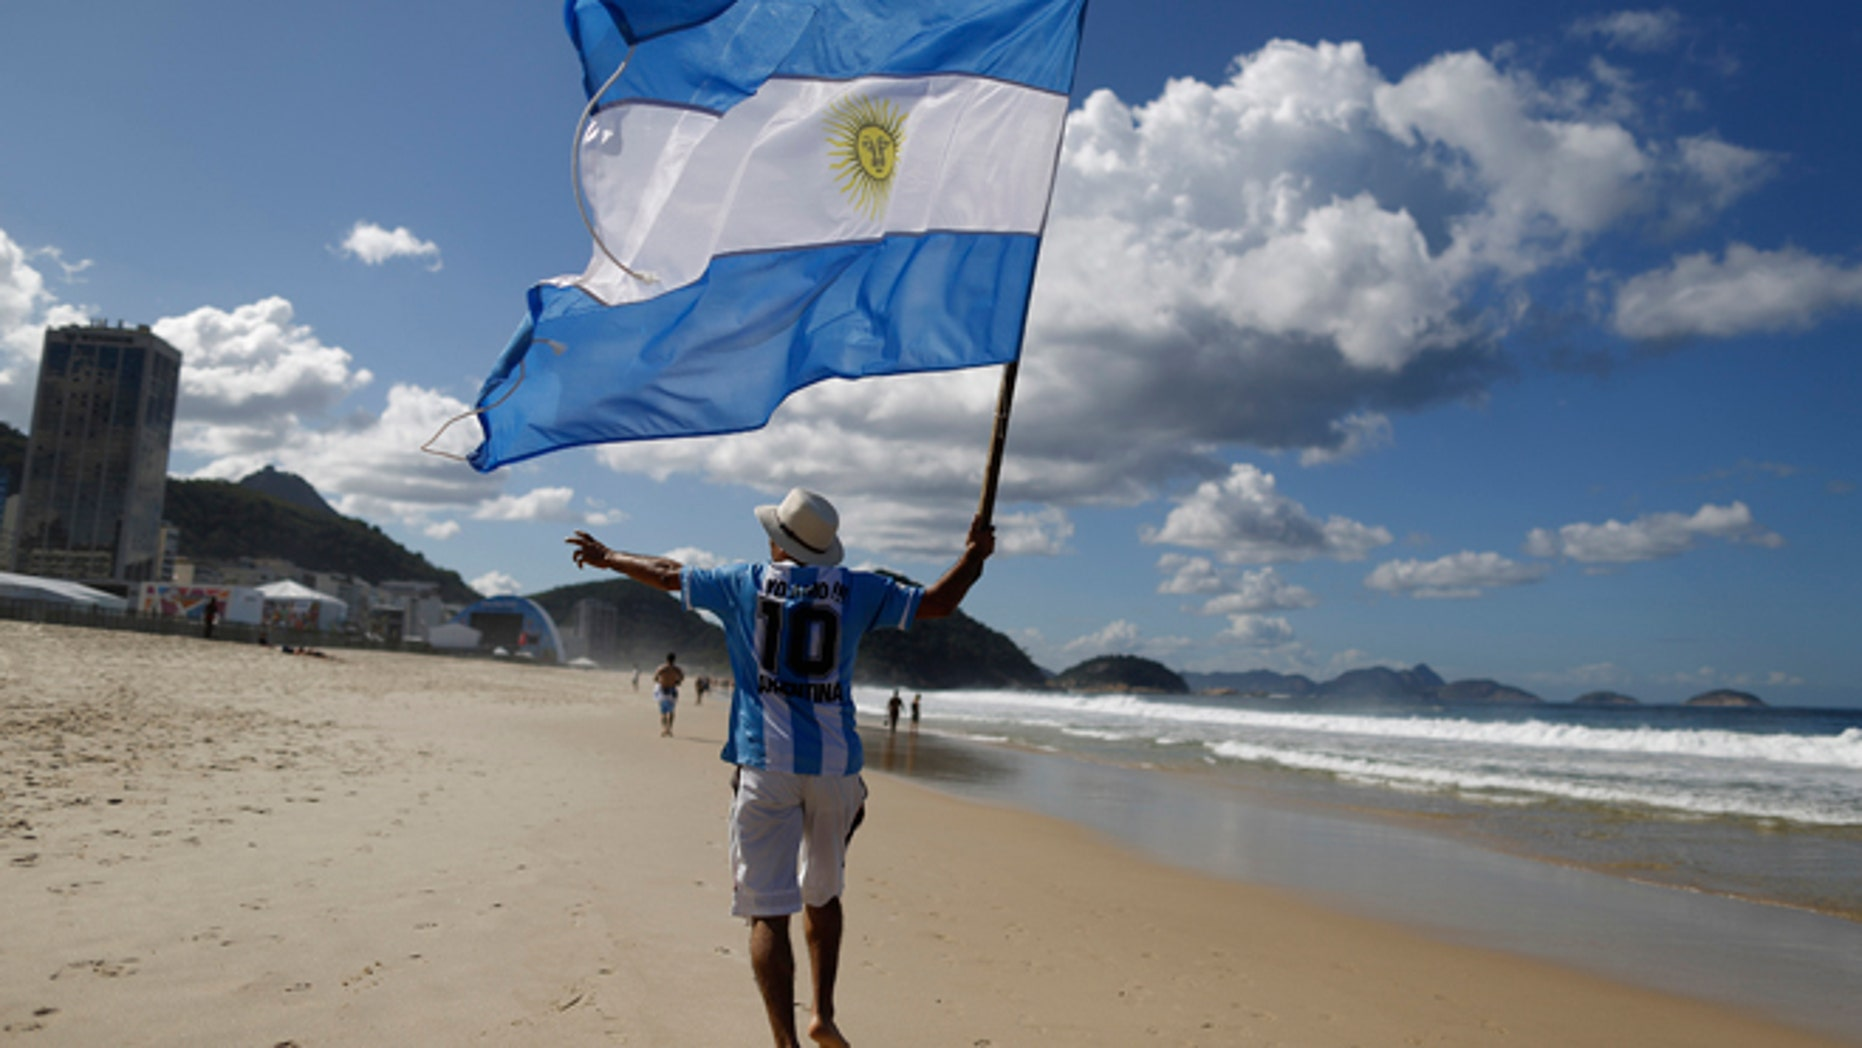 FILE - In this  July 14, 2014, file photo, an Argentina soccer fan waves Argentina's national flag the morning after his team was defeated by Germany at the World Cup final, on Copacabana beach in Rio de Janeiro, Brazil. Local media reports say tens of thousands of Argentine fans have remained in the country after the tournament ended. But the prospect of a large number of foreigners selling handicrafts, juggling at intersections for handouts or relying on government social services for poor Brazilians has officials worried. (AP Photo/Leo Correa, File)